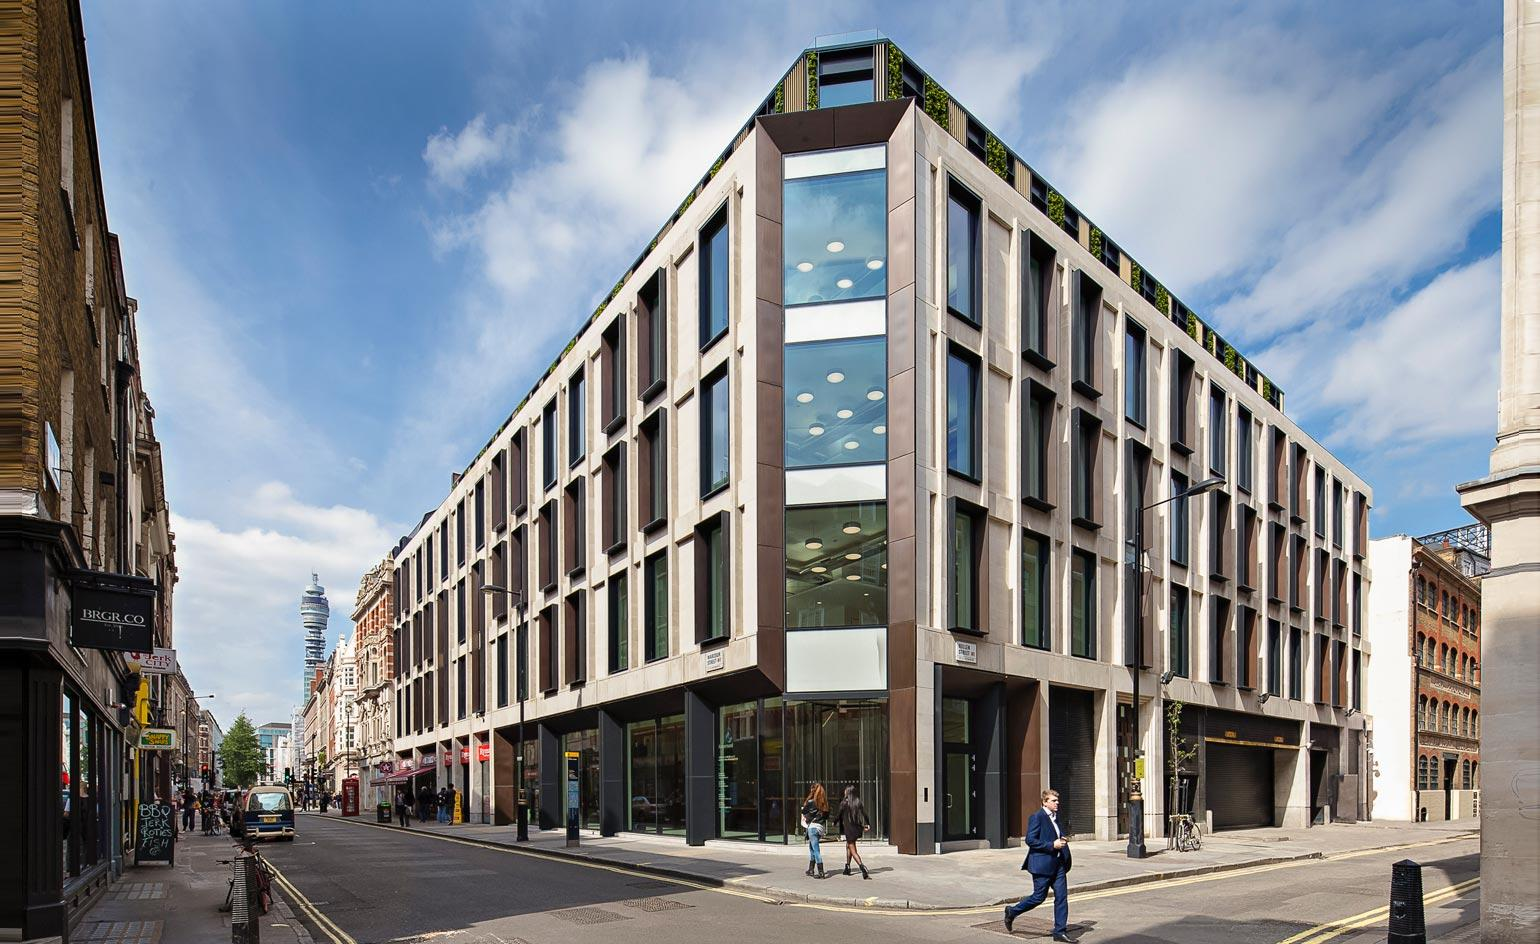 The new Ampersand Building in Soho is the result of a creative collaboration